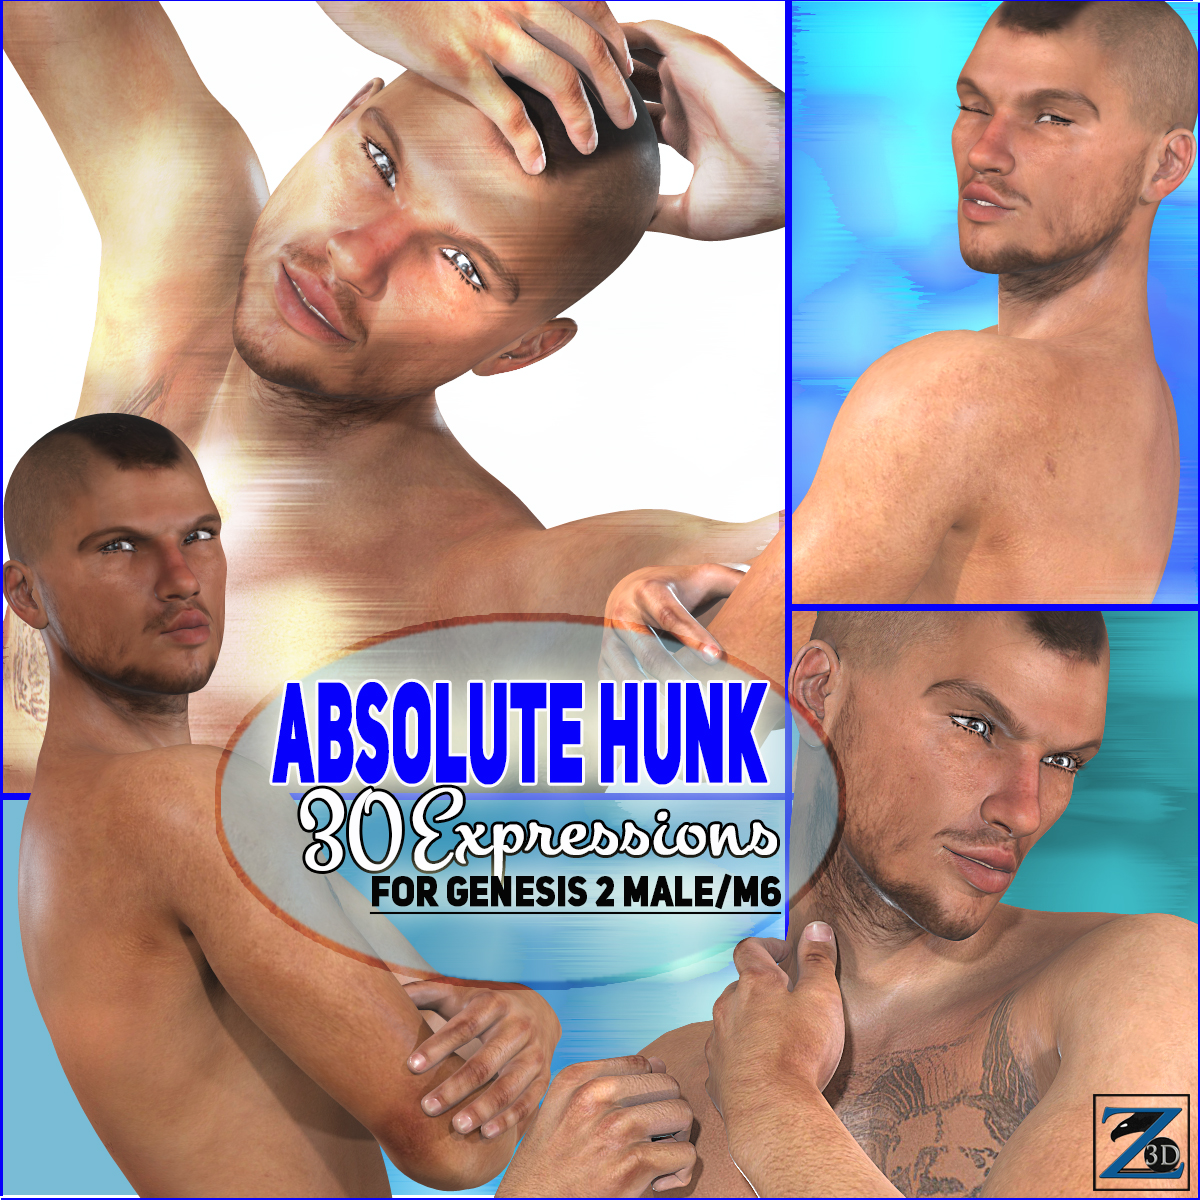 Z Absolute Hunk Expressions